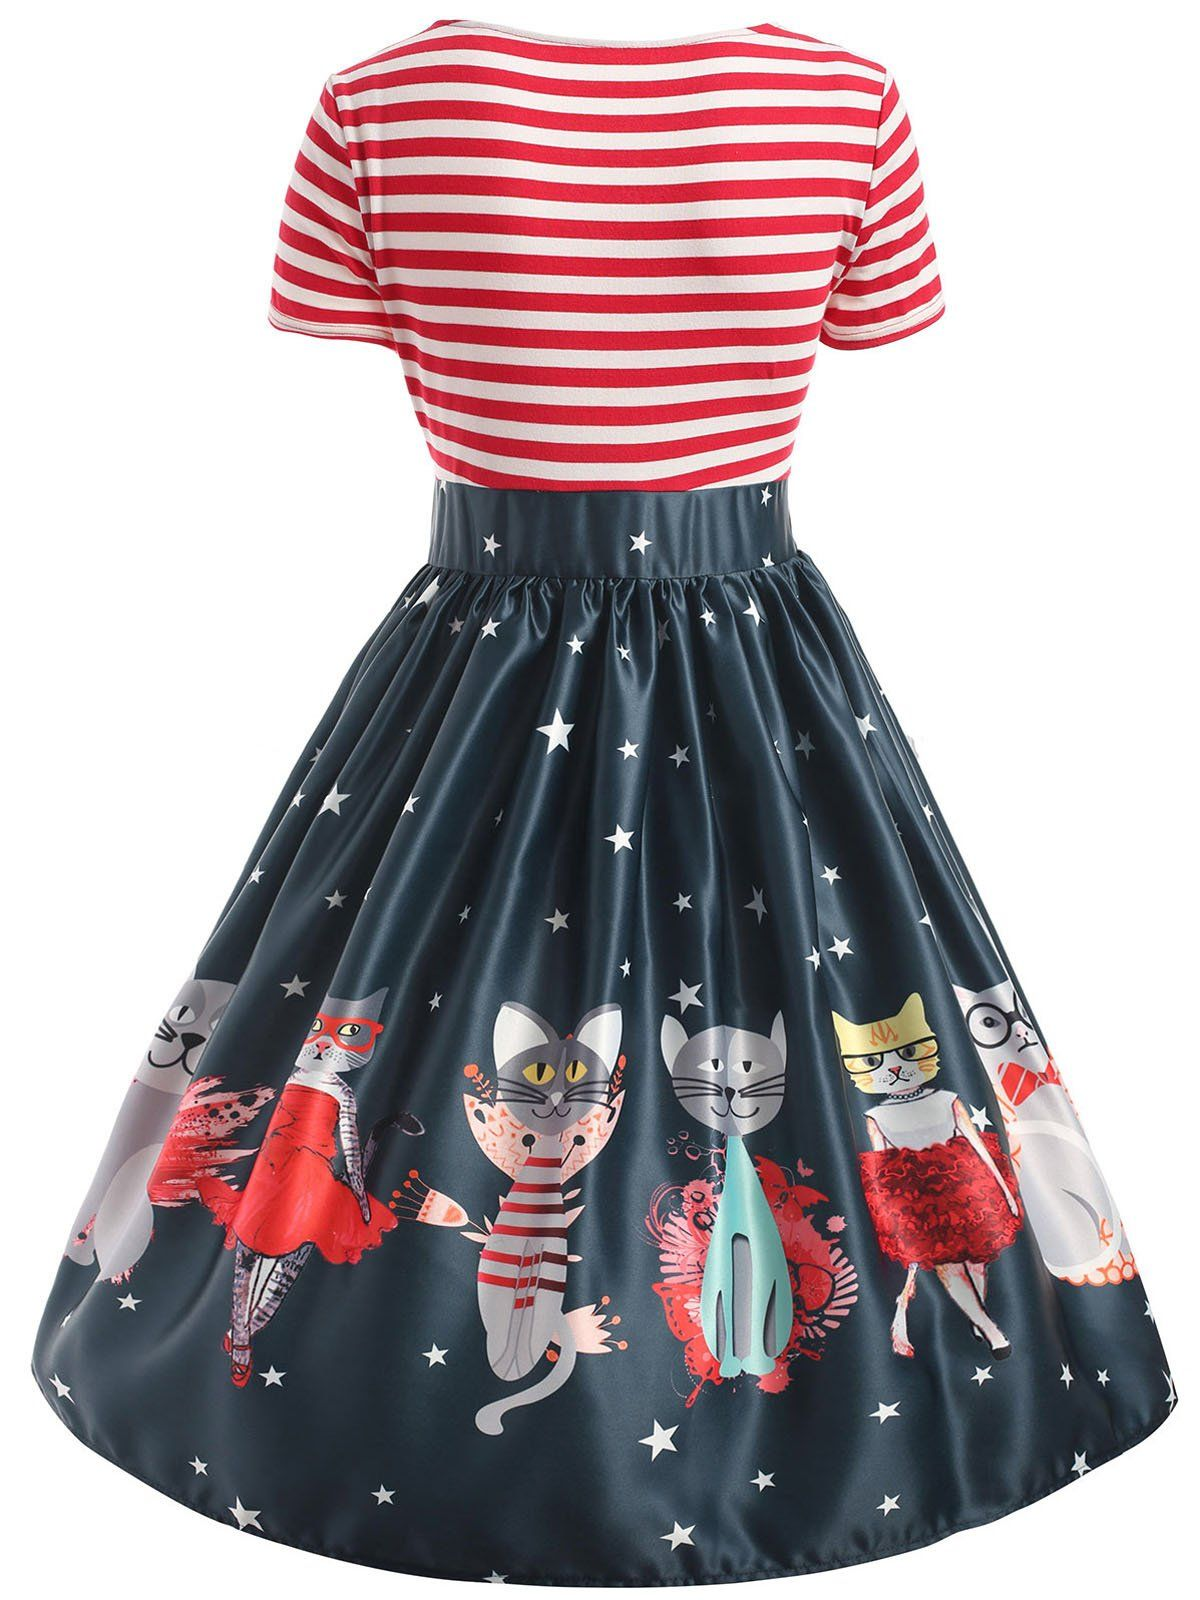 Red 1950s Cat Patchwork Swing Dress Retro Stage Chic Vintage Dresses And Accessories Plus Size Vintage Dresses Plus Size Club Dresses Vintage Dresses